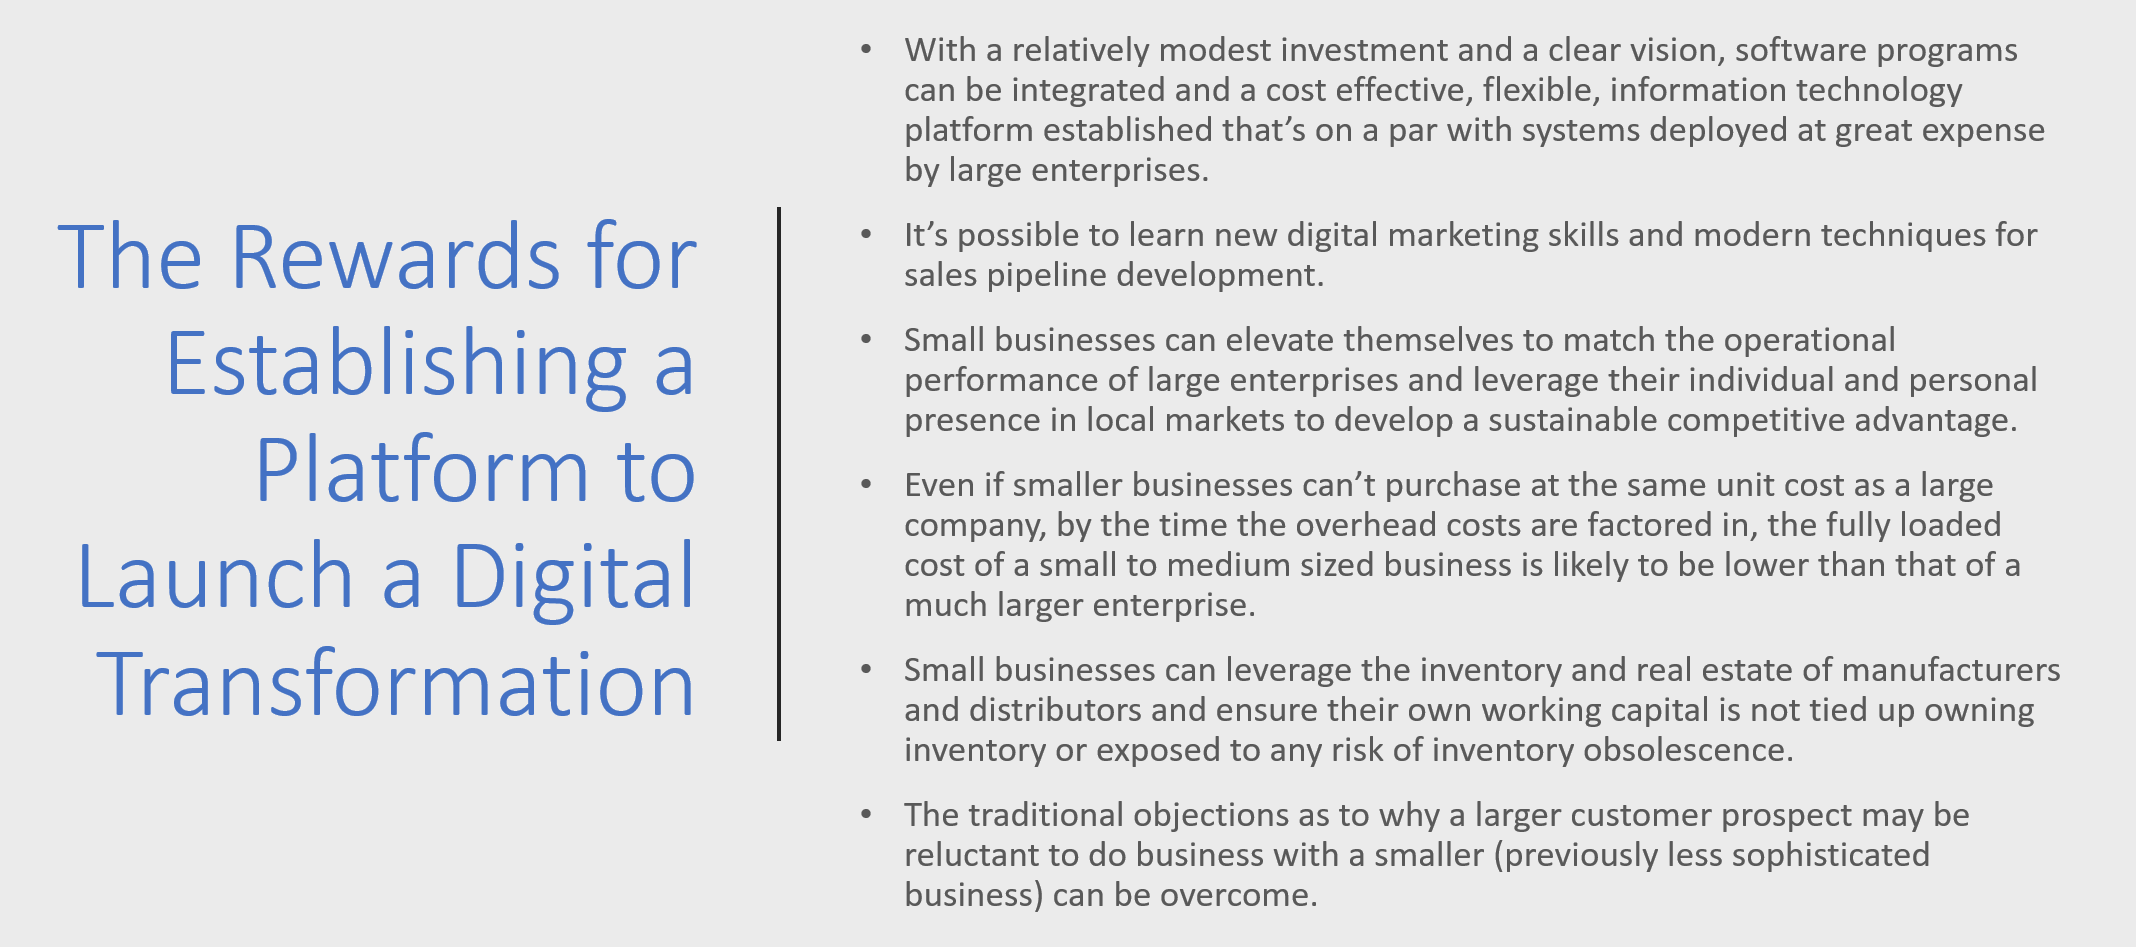 The Rewards for Establishing a Platform for Digital Transformation.png